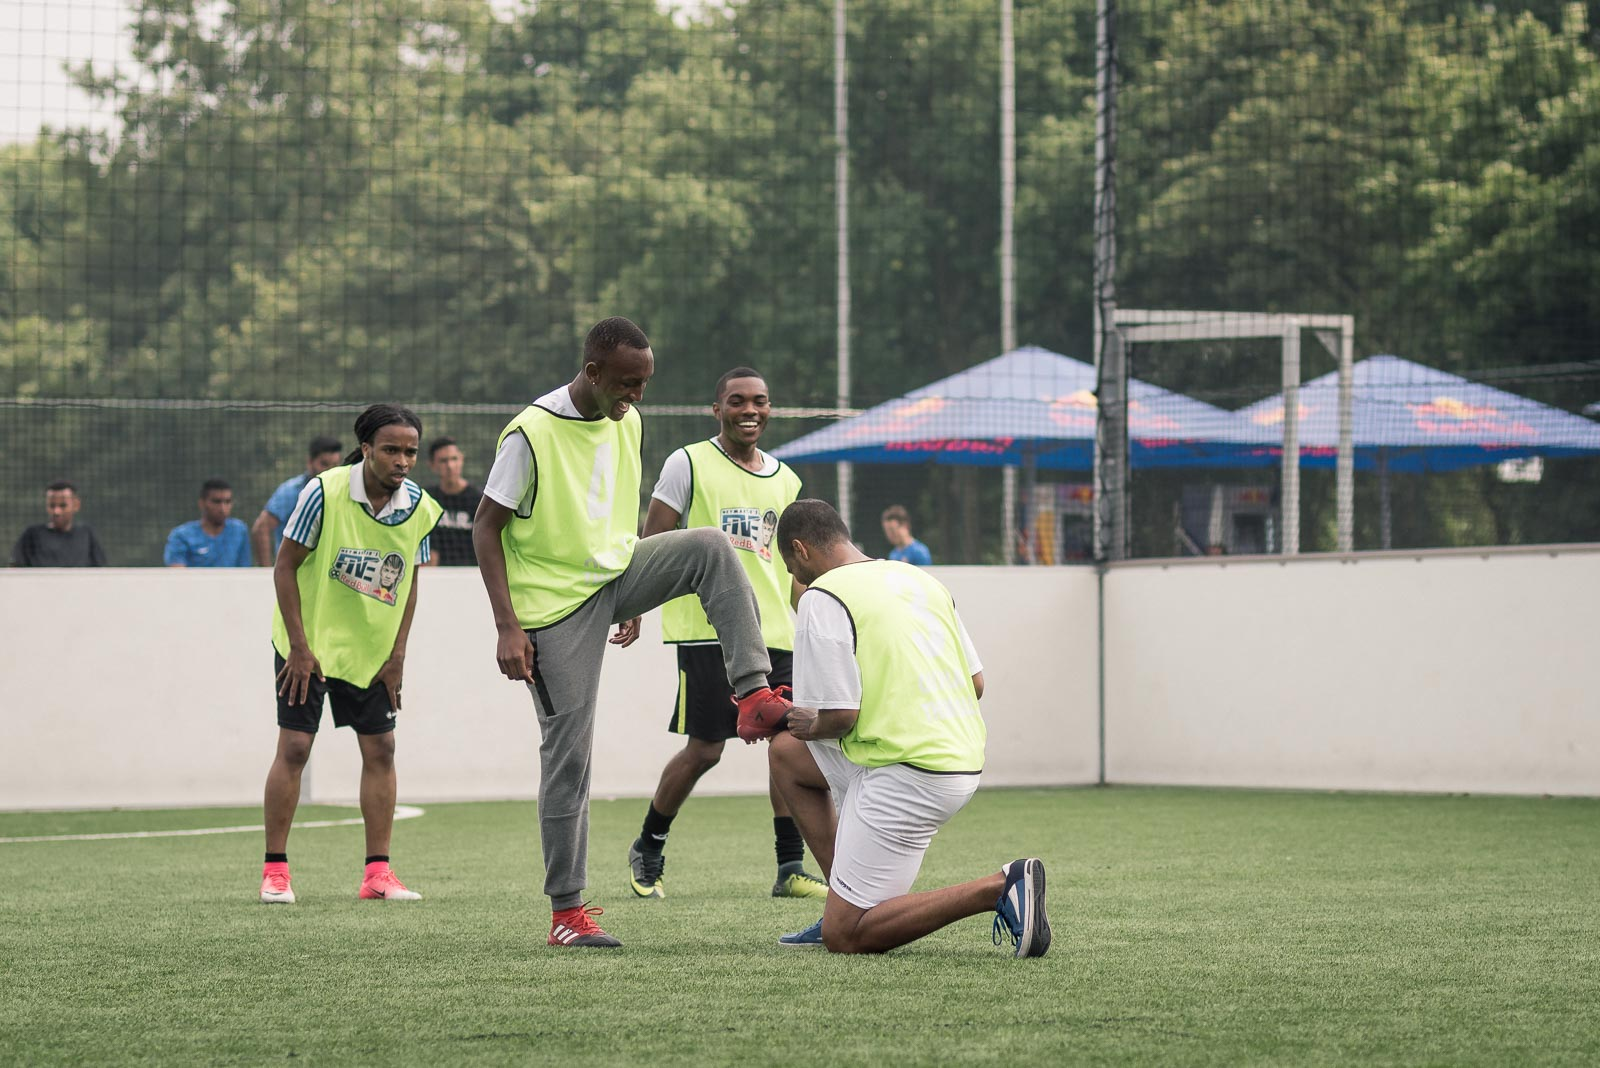 Football players celebrating a goal during Red Bull Neymar Jr's Five